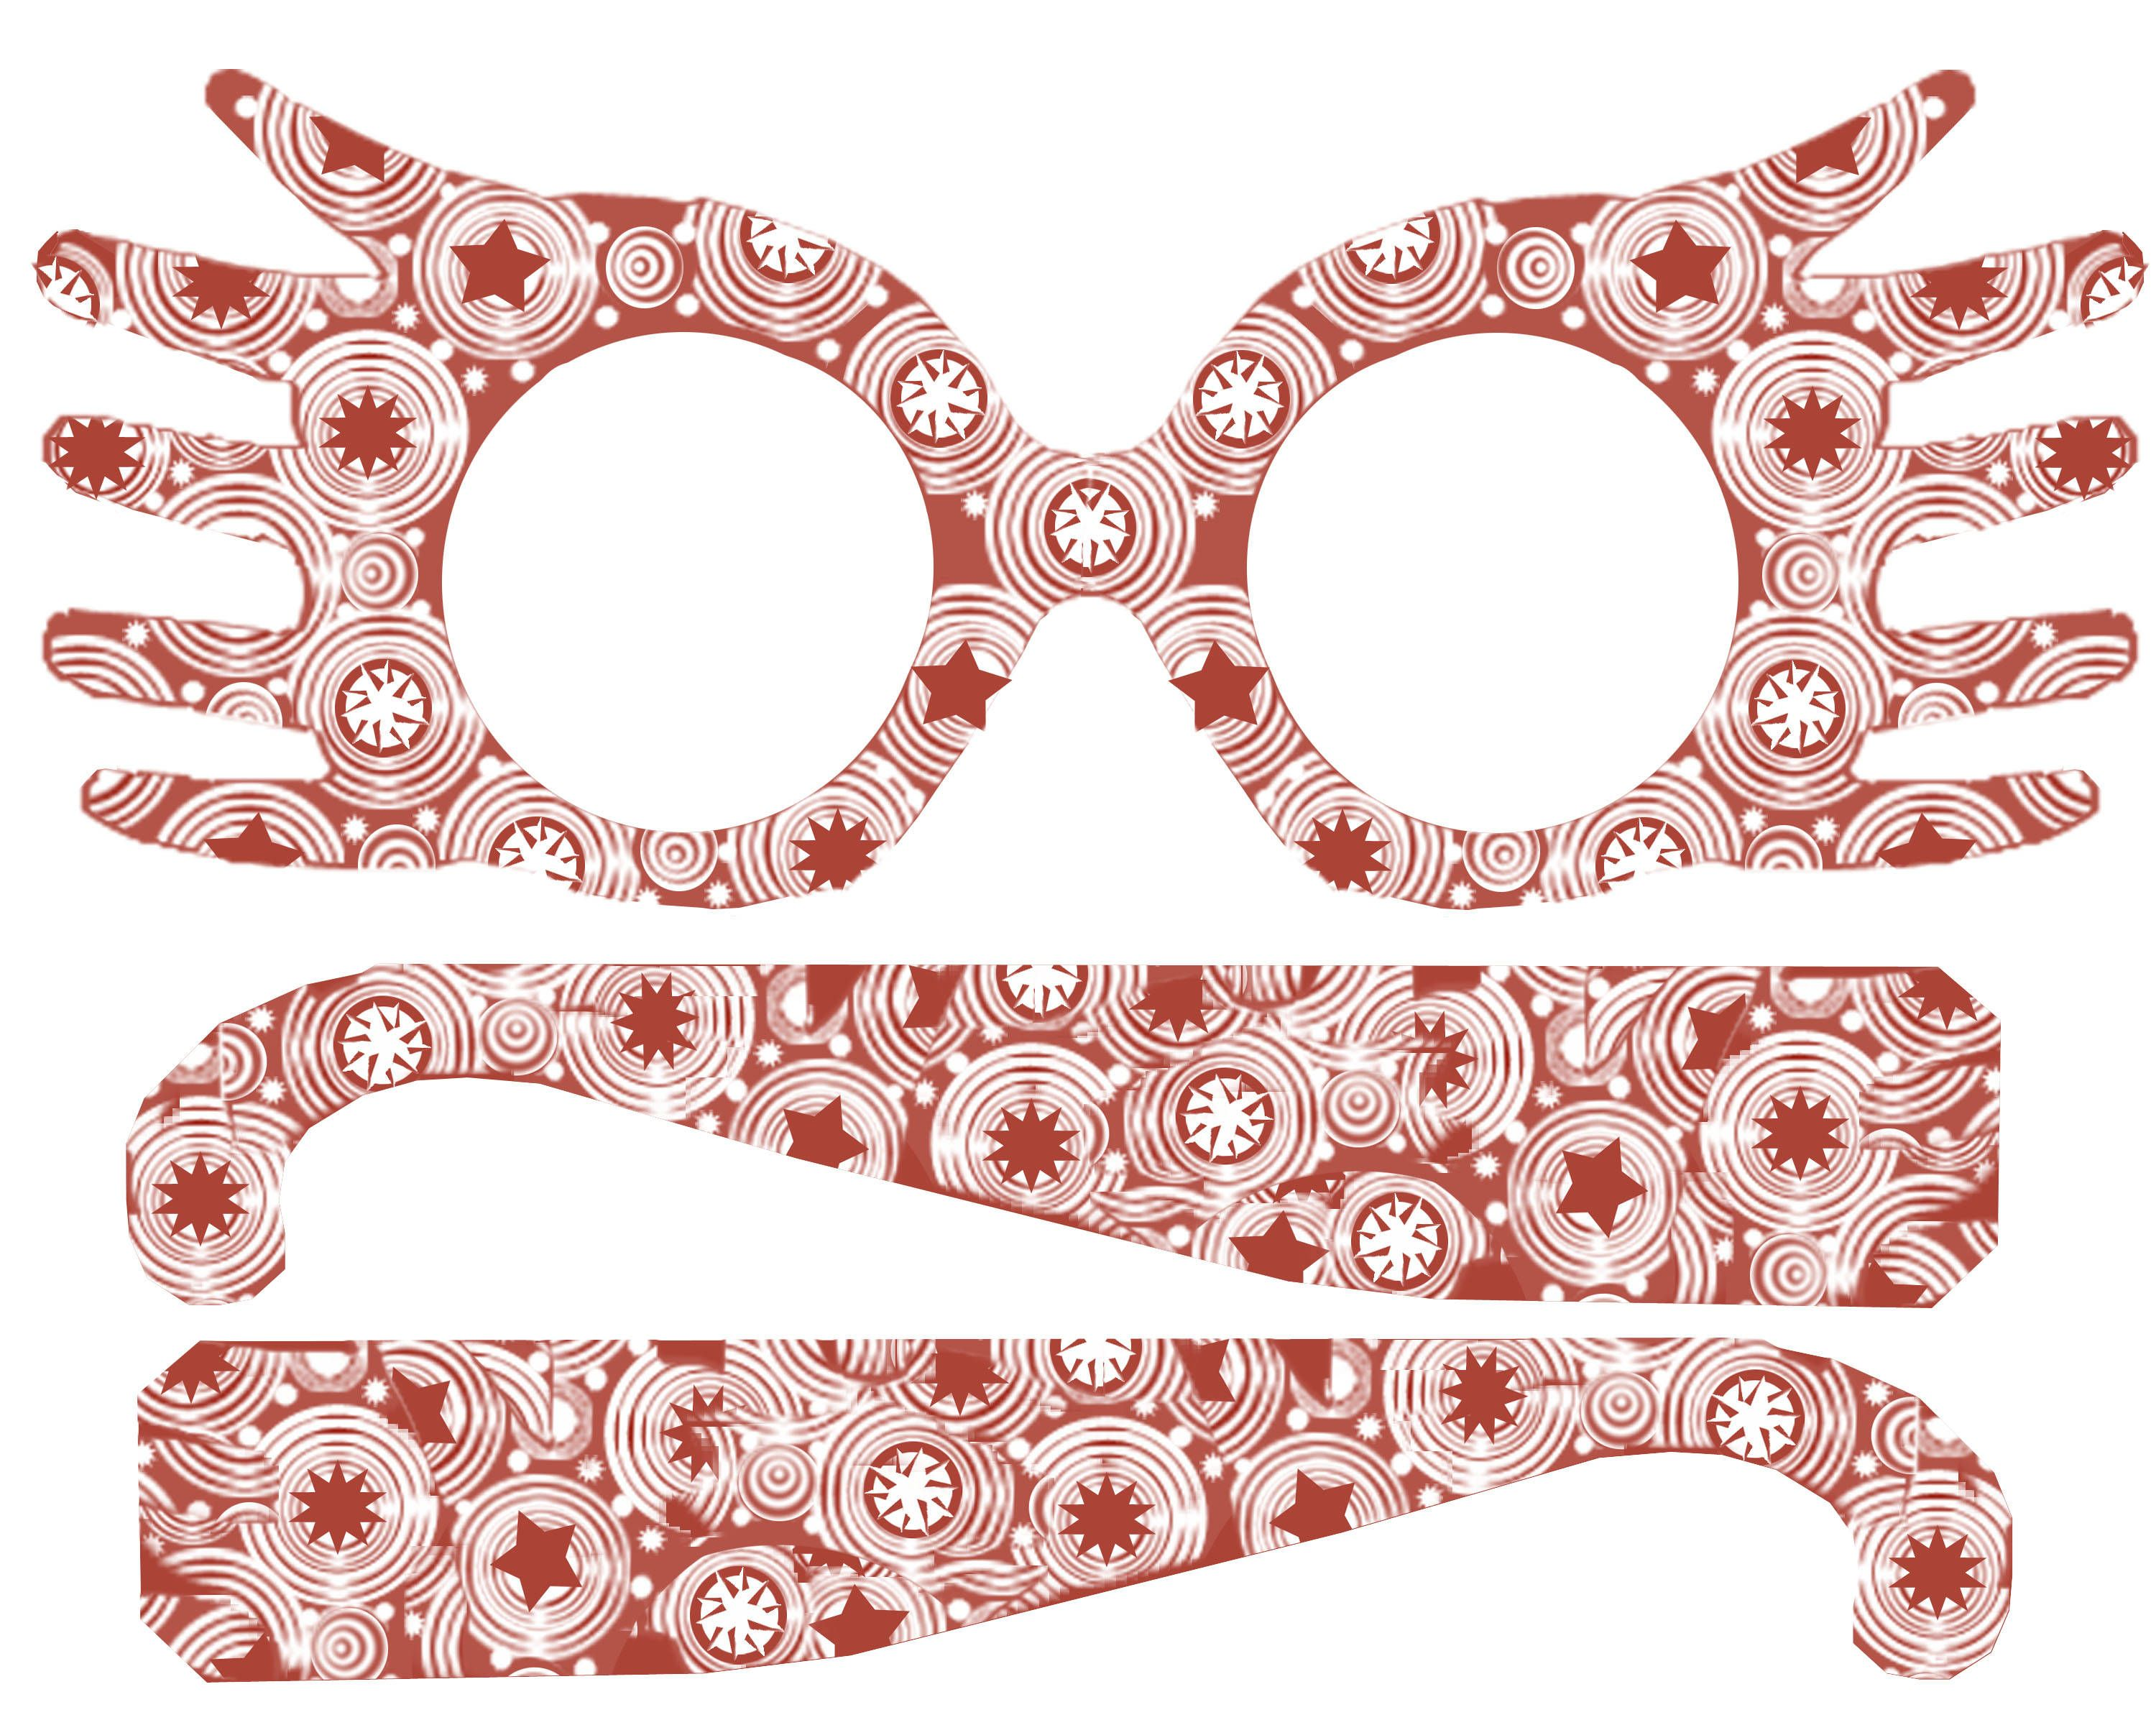 photo regarding Luna Lovegood Glasses Printable named Do-it-yourself Printable Luna Lovegood Spectrespecs Gles Harry